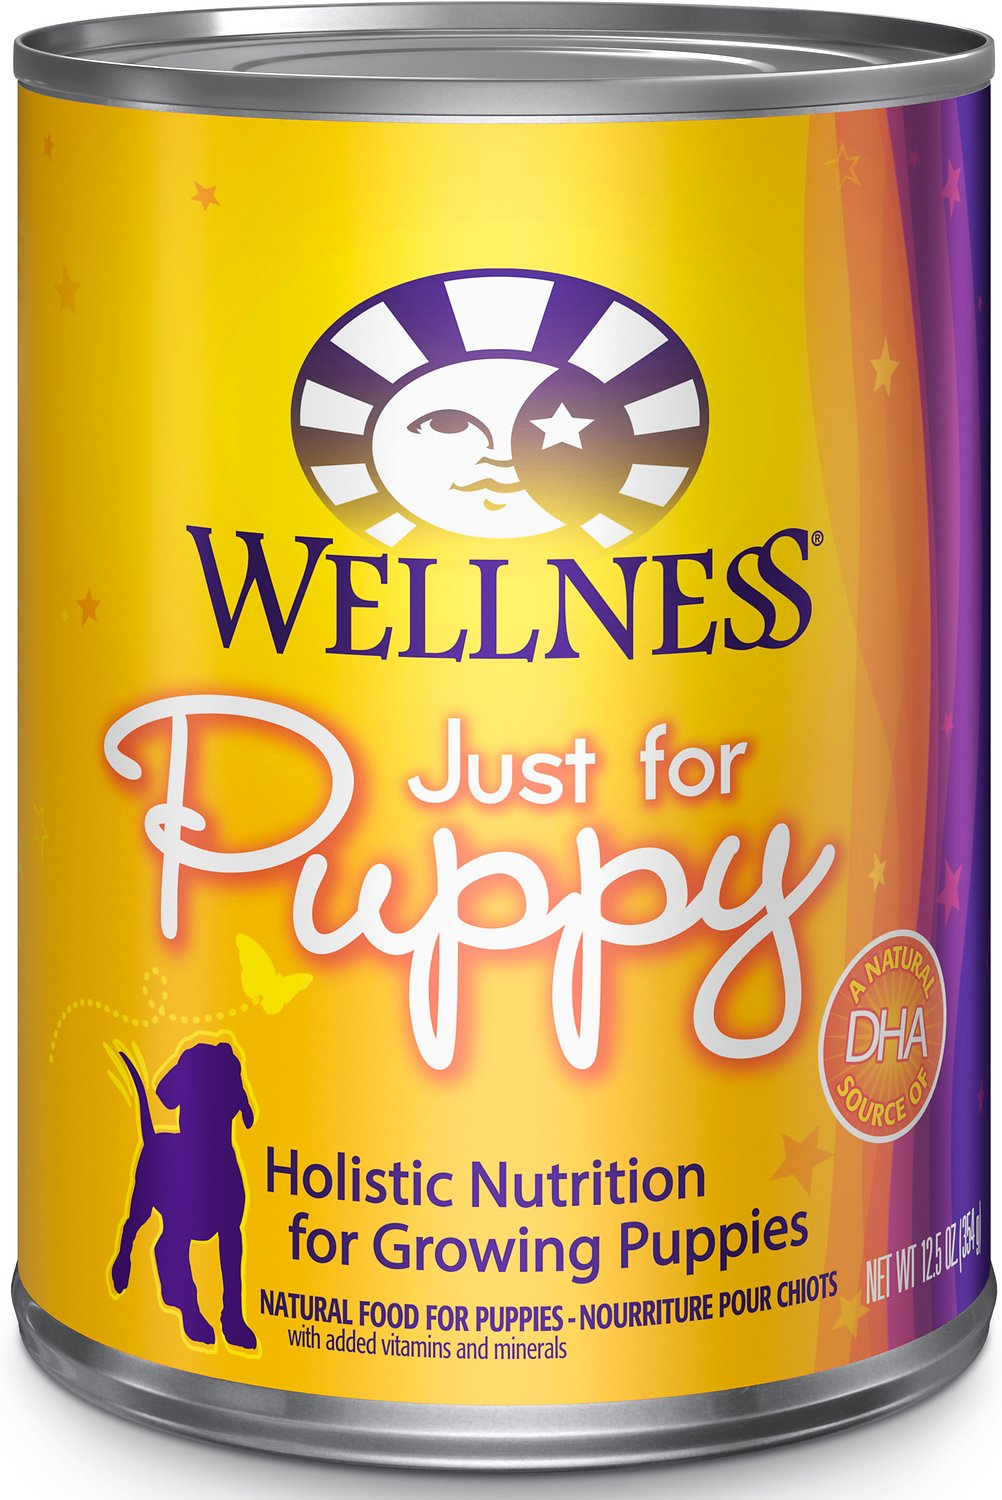 Best Canned Dog Food >> Wellness Complete Health Just For Puppy Canned Dog Food 12 5 Oz Case Of 12